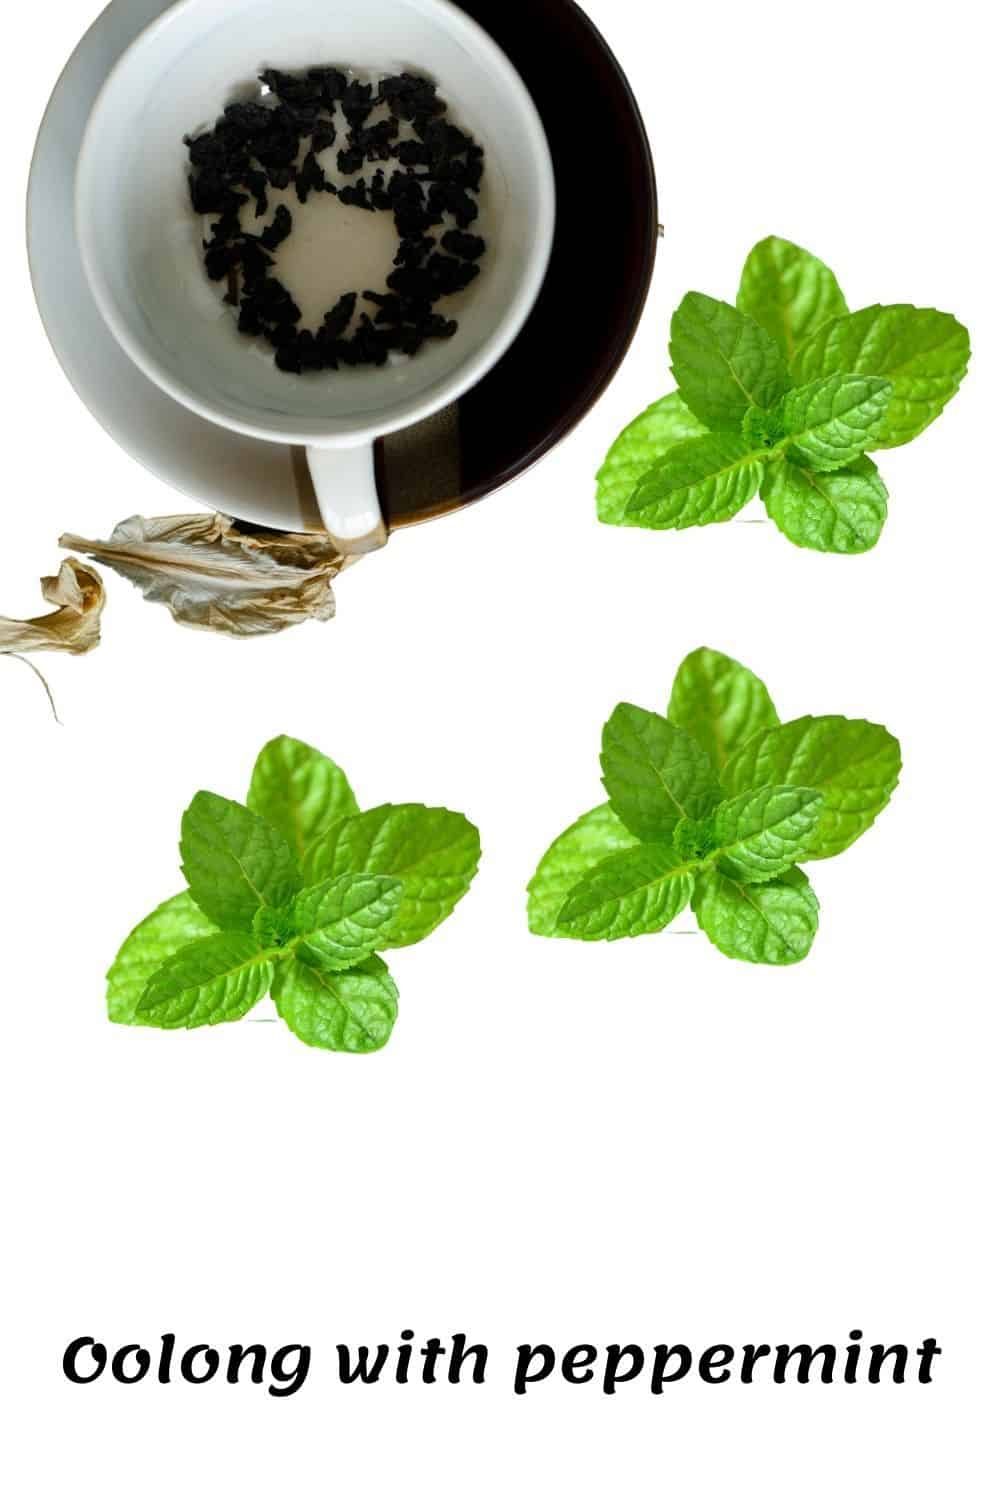 Oolong tea with peppermint